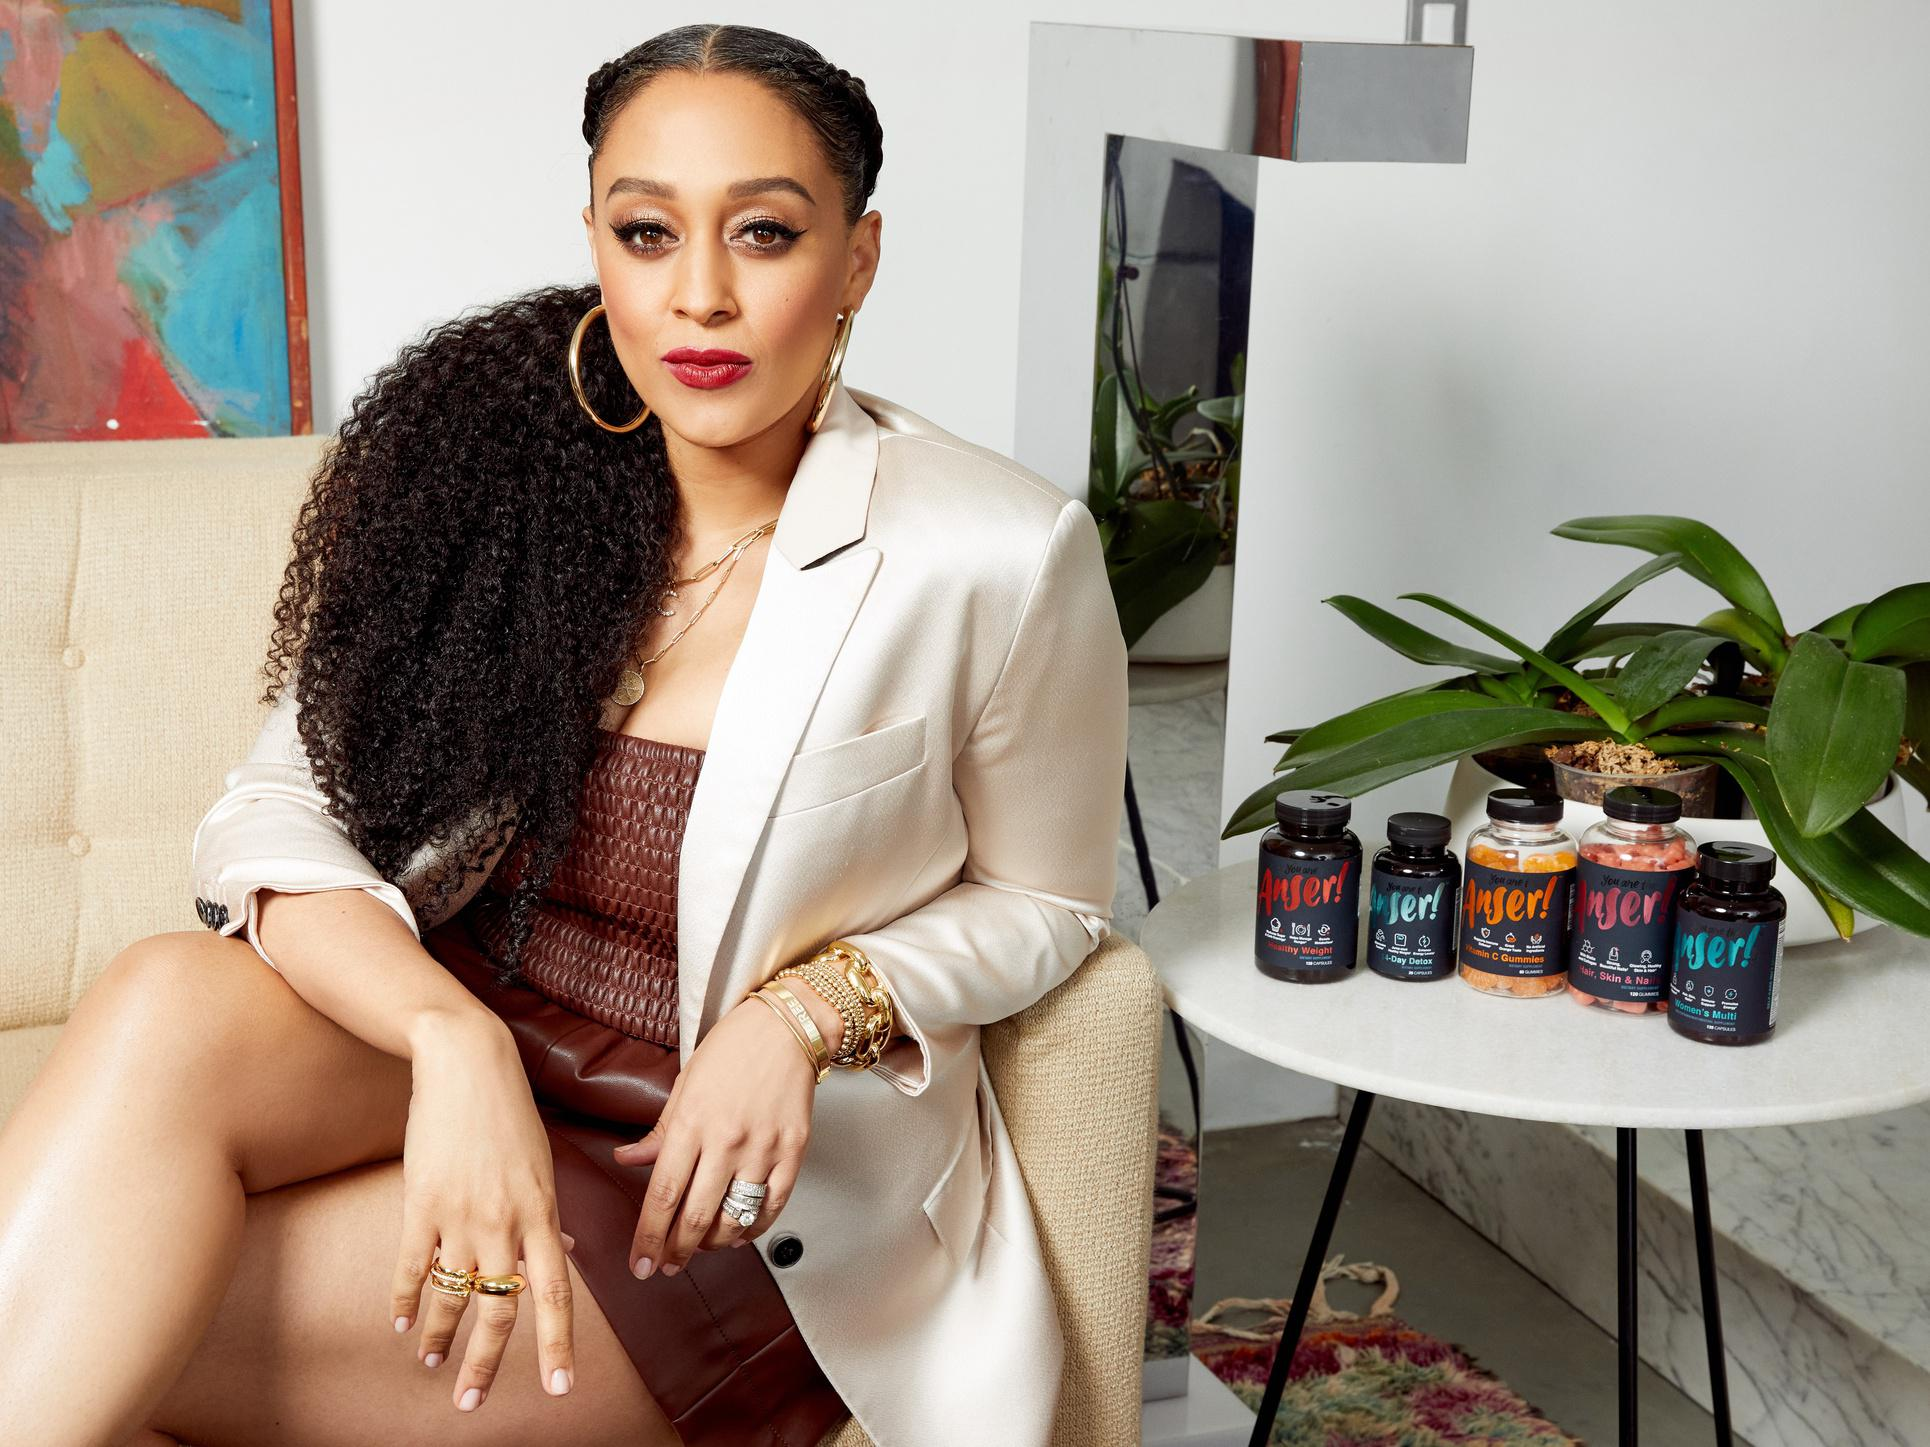 With Anser, Tia Mowry is aiming to make the wellness industry more inclusive.